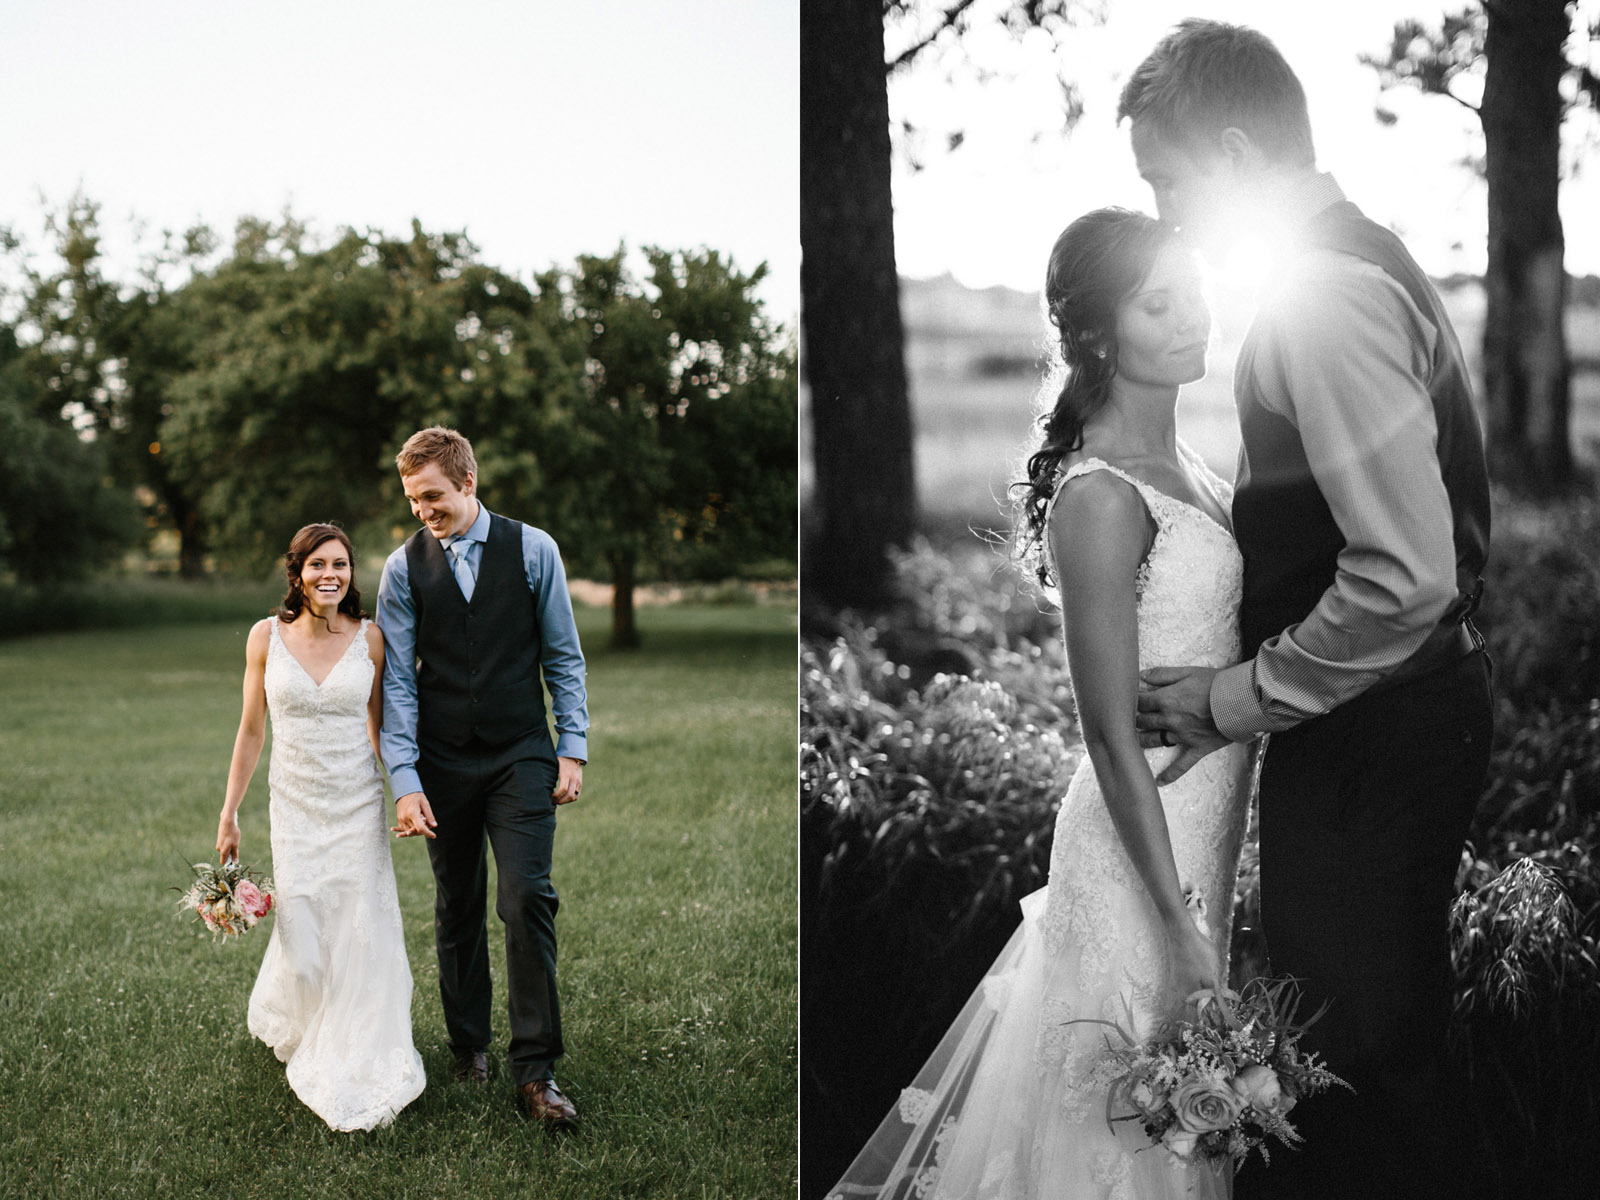 Outdoor_Wedding_SiouxFalls_MaryJoWegnerArboretum_Photographer_Calli&Jon_139.jpg